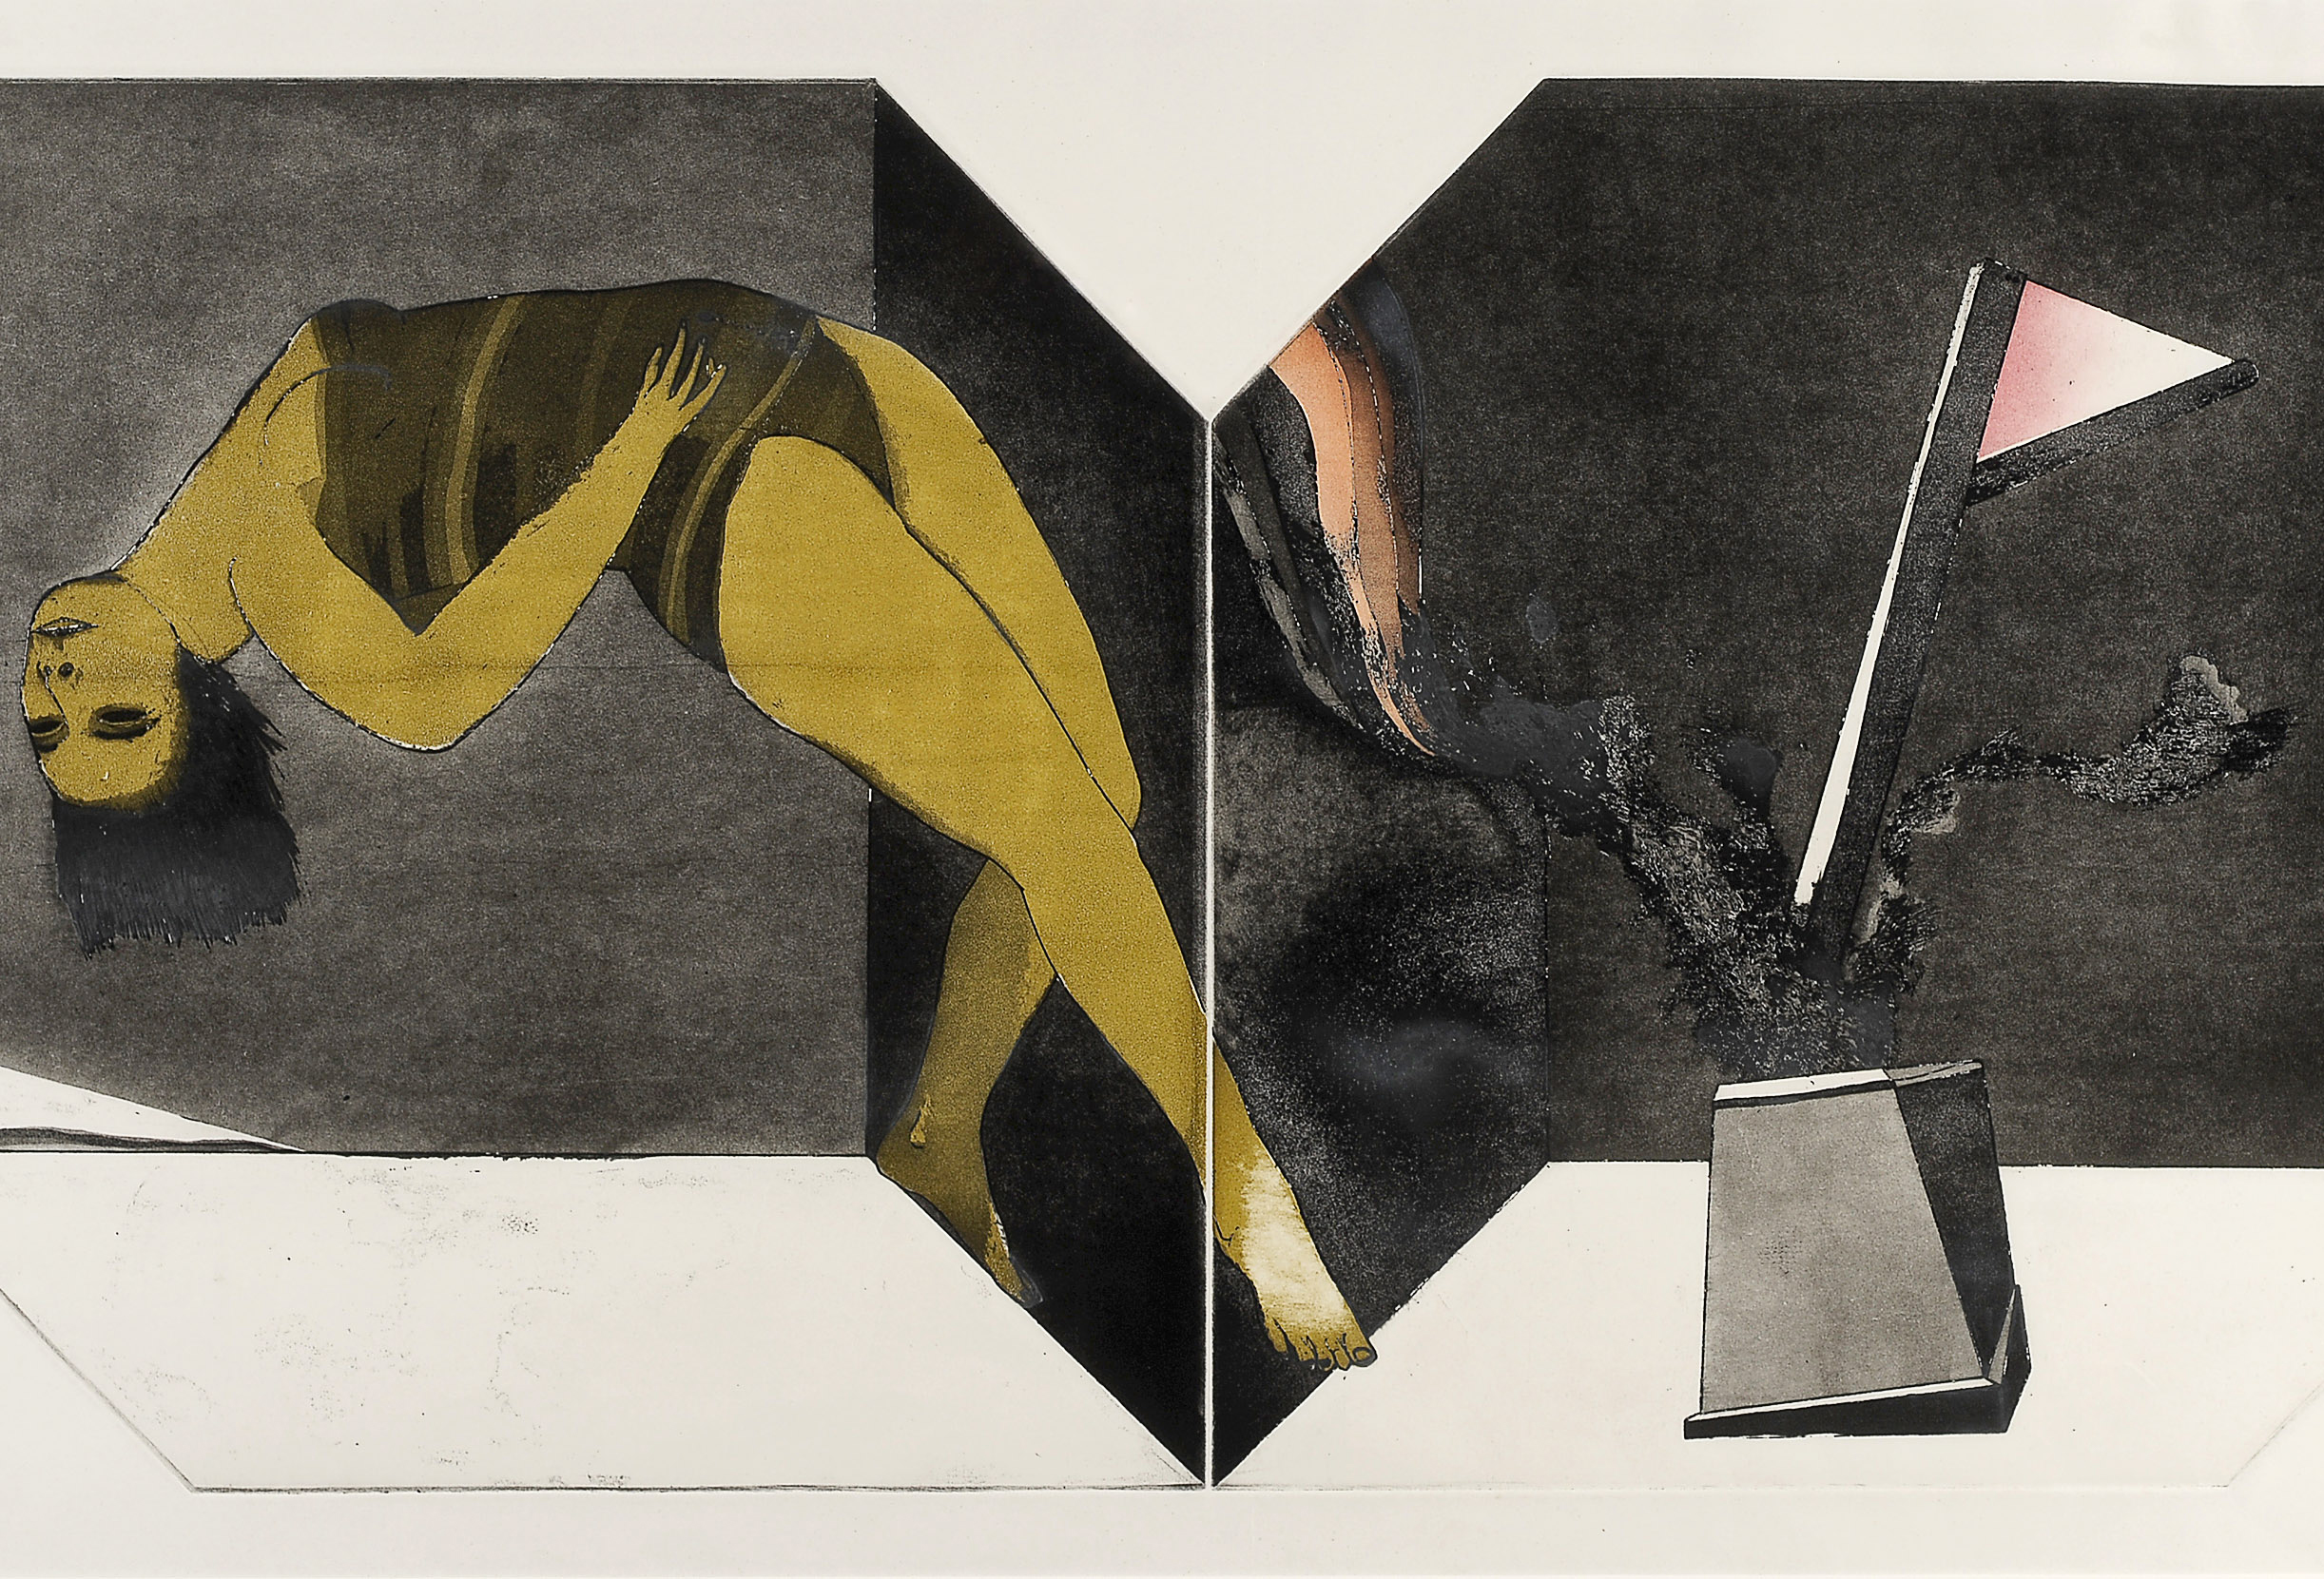 George Baldessin Performance (Variation 2) 1971 etching, aquatint and colour stencil 53.0 x 101.0 cm (image and plate), 63.5 x 111.5 cm (sheet) Private collection, Melbourne © The Estate of George Baldessin